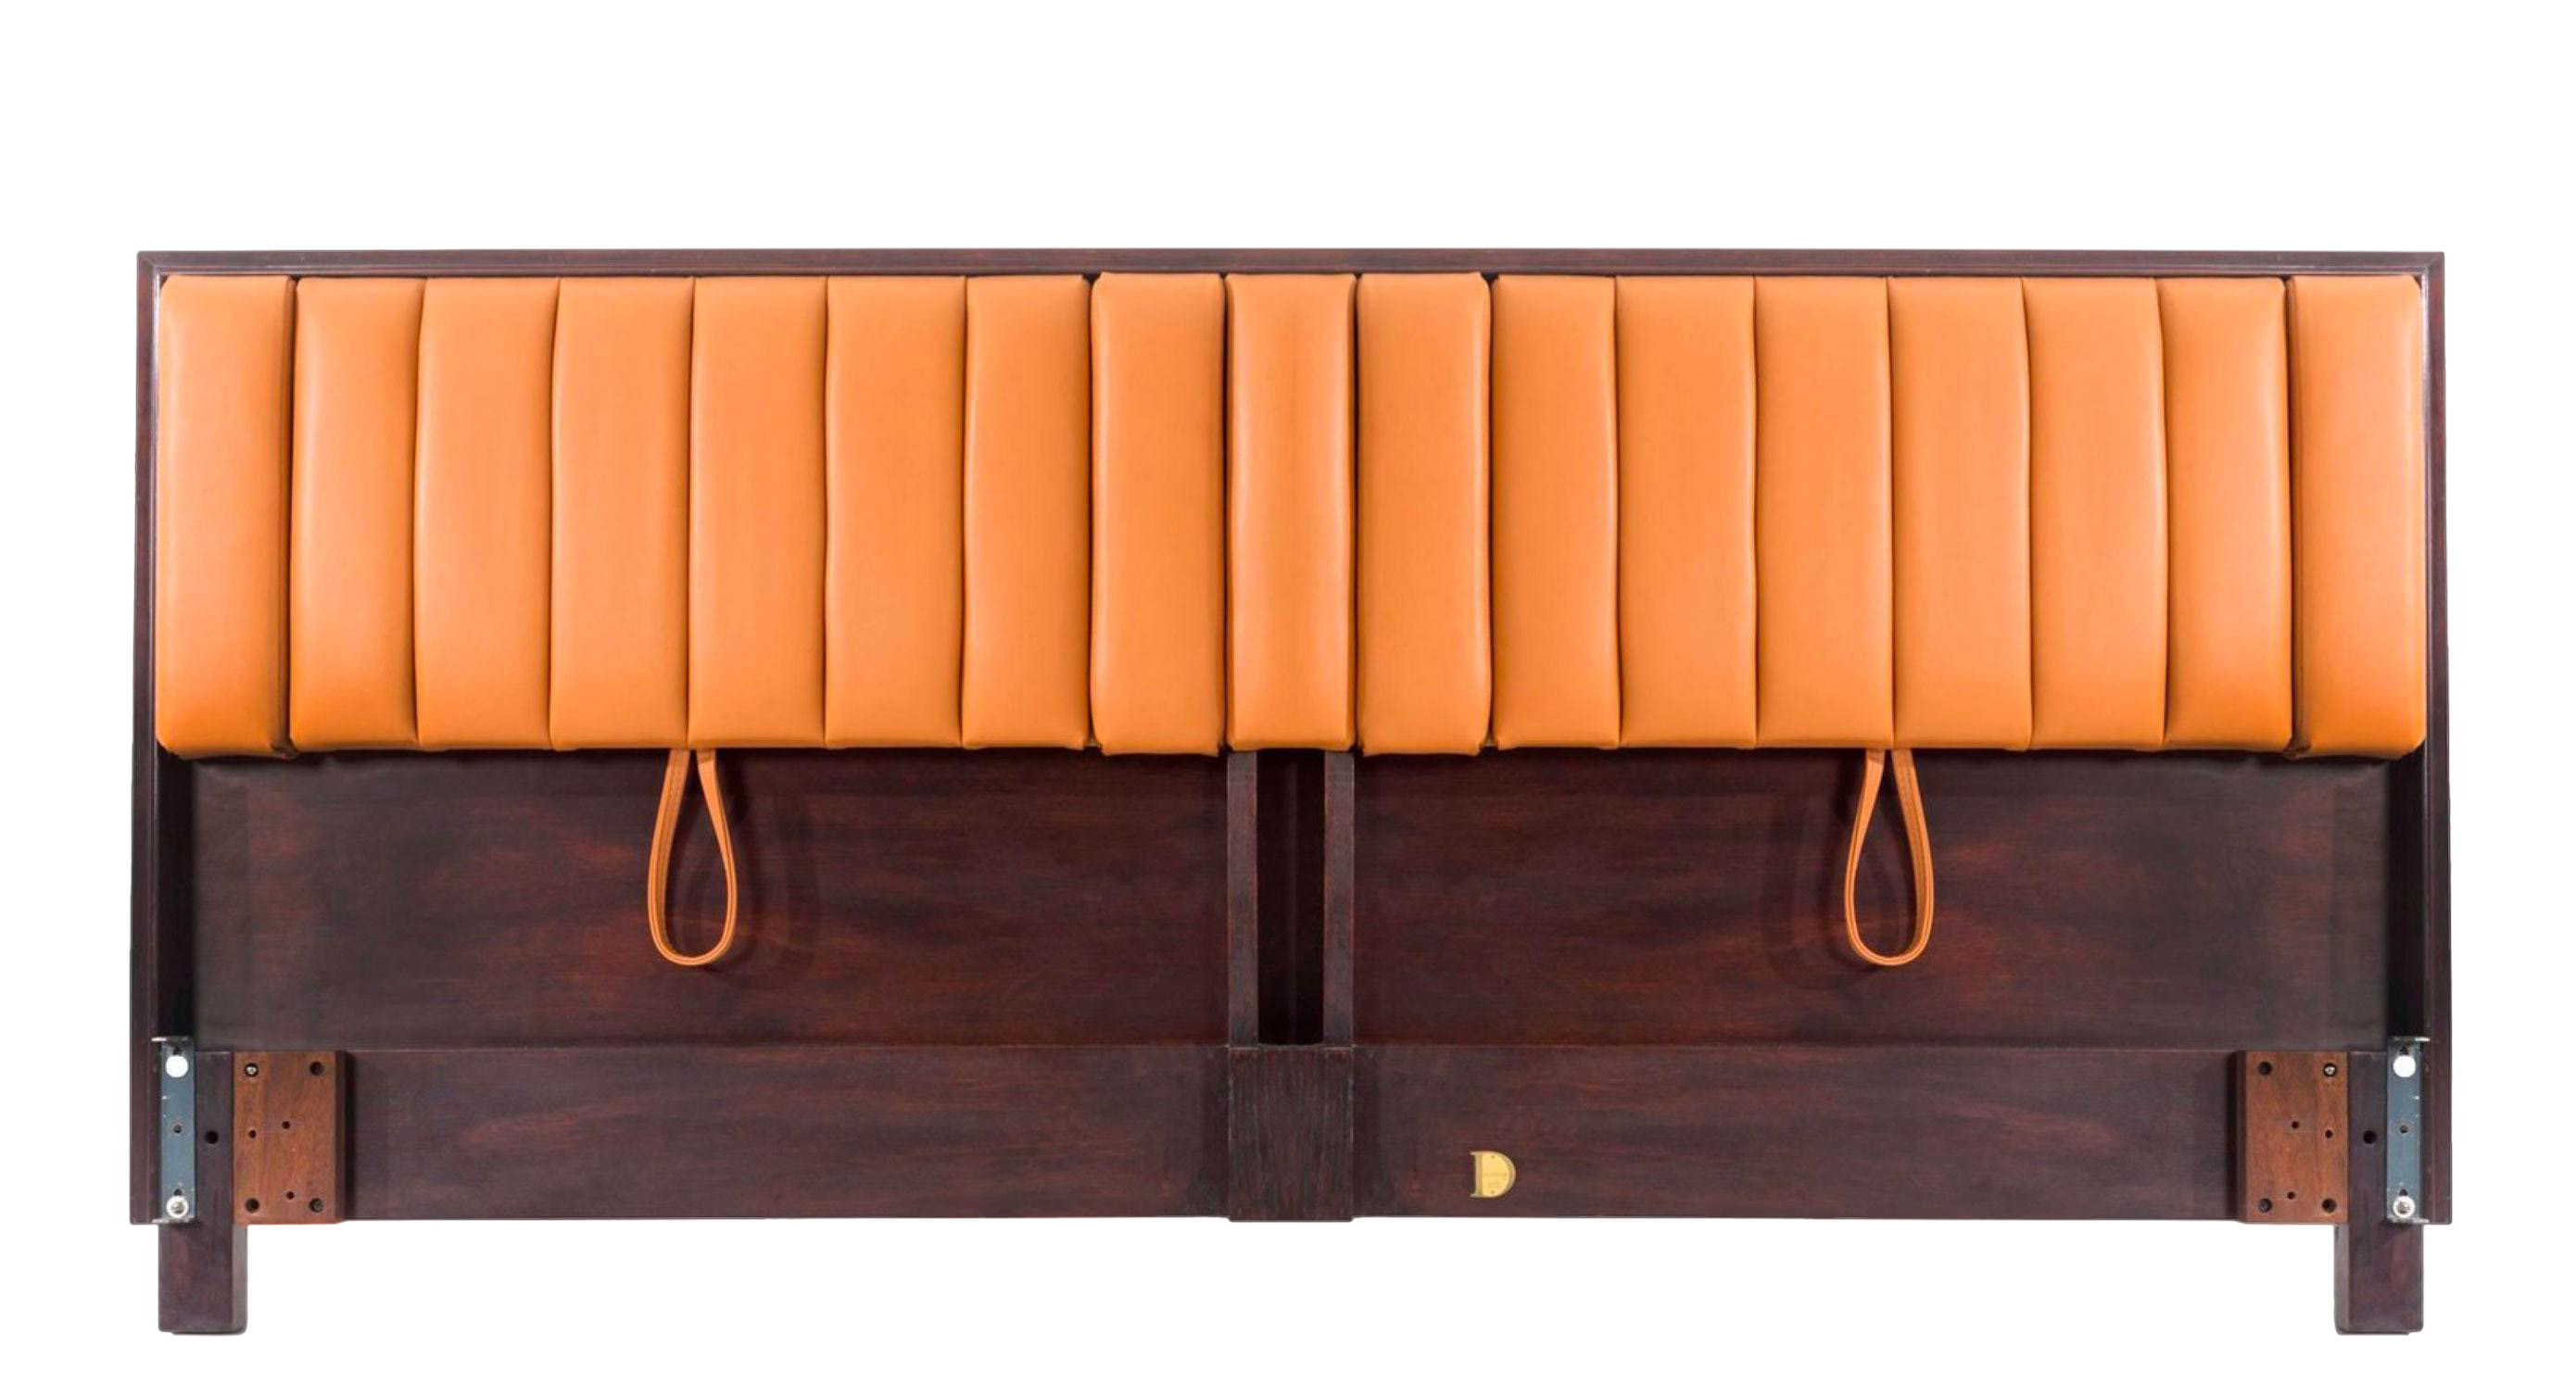 edward wormley king size headboard from decaso vintage furniture - vintage beds - modernist beds - modernist furniture - orange and wood headboard - headboards